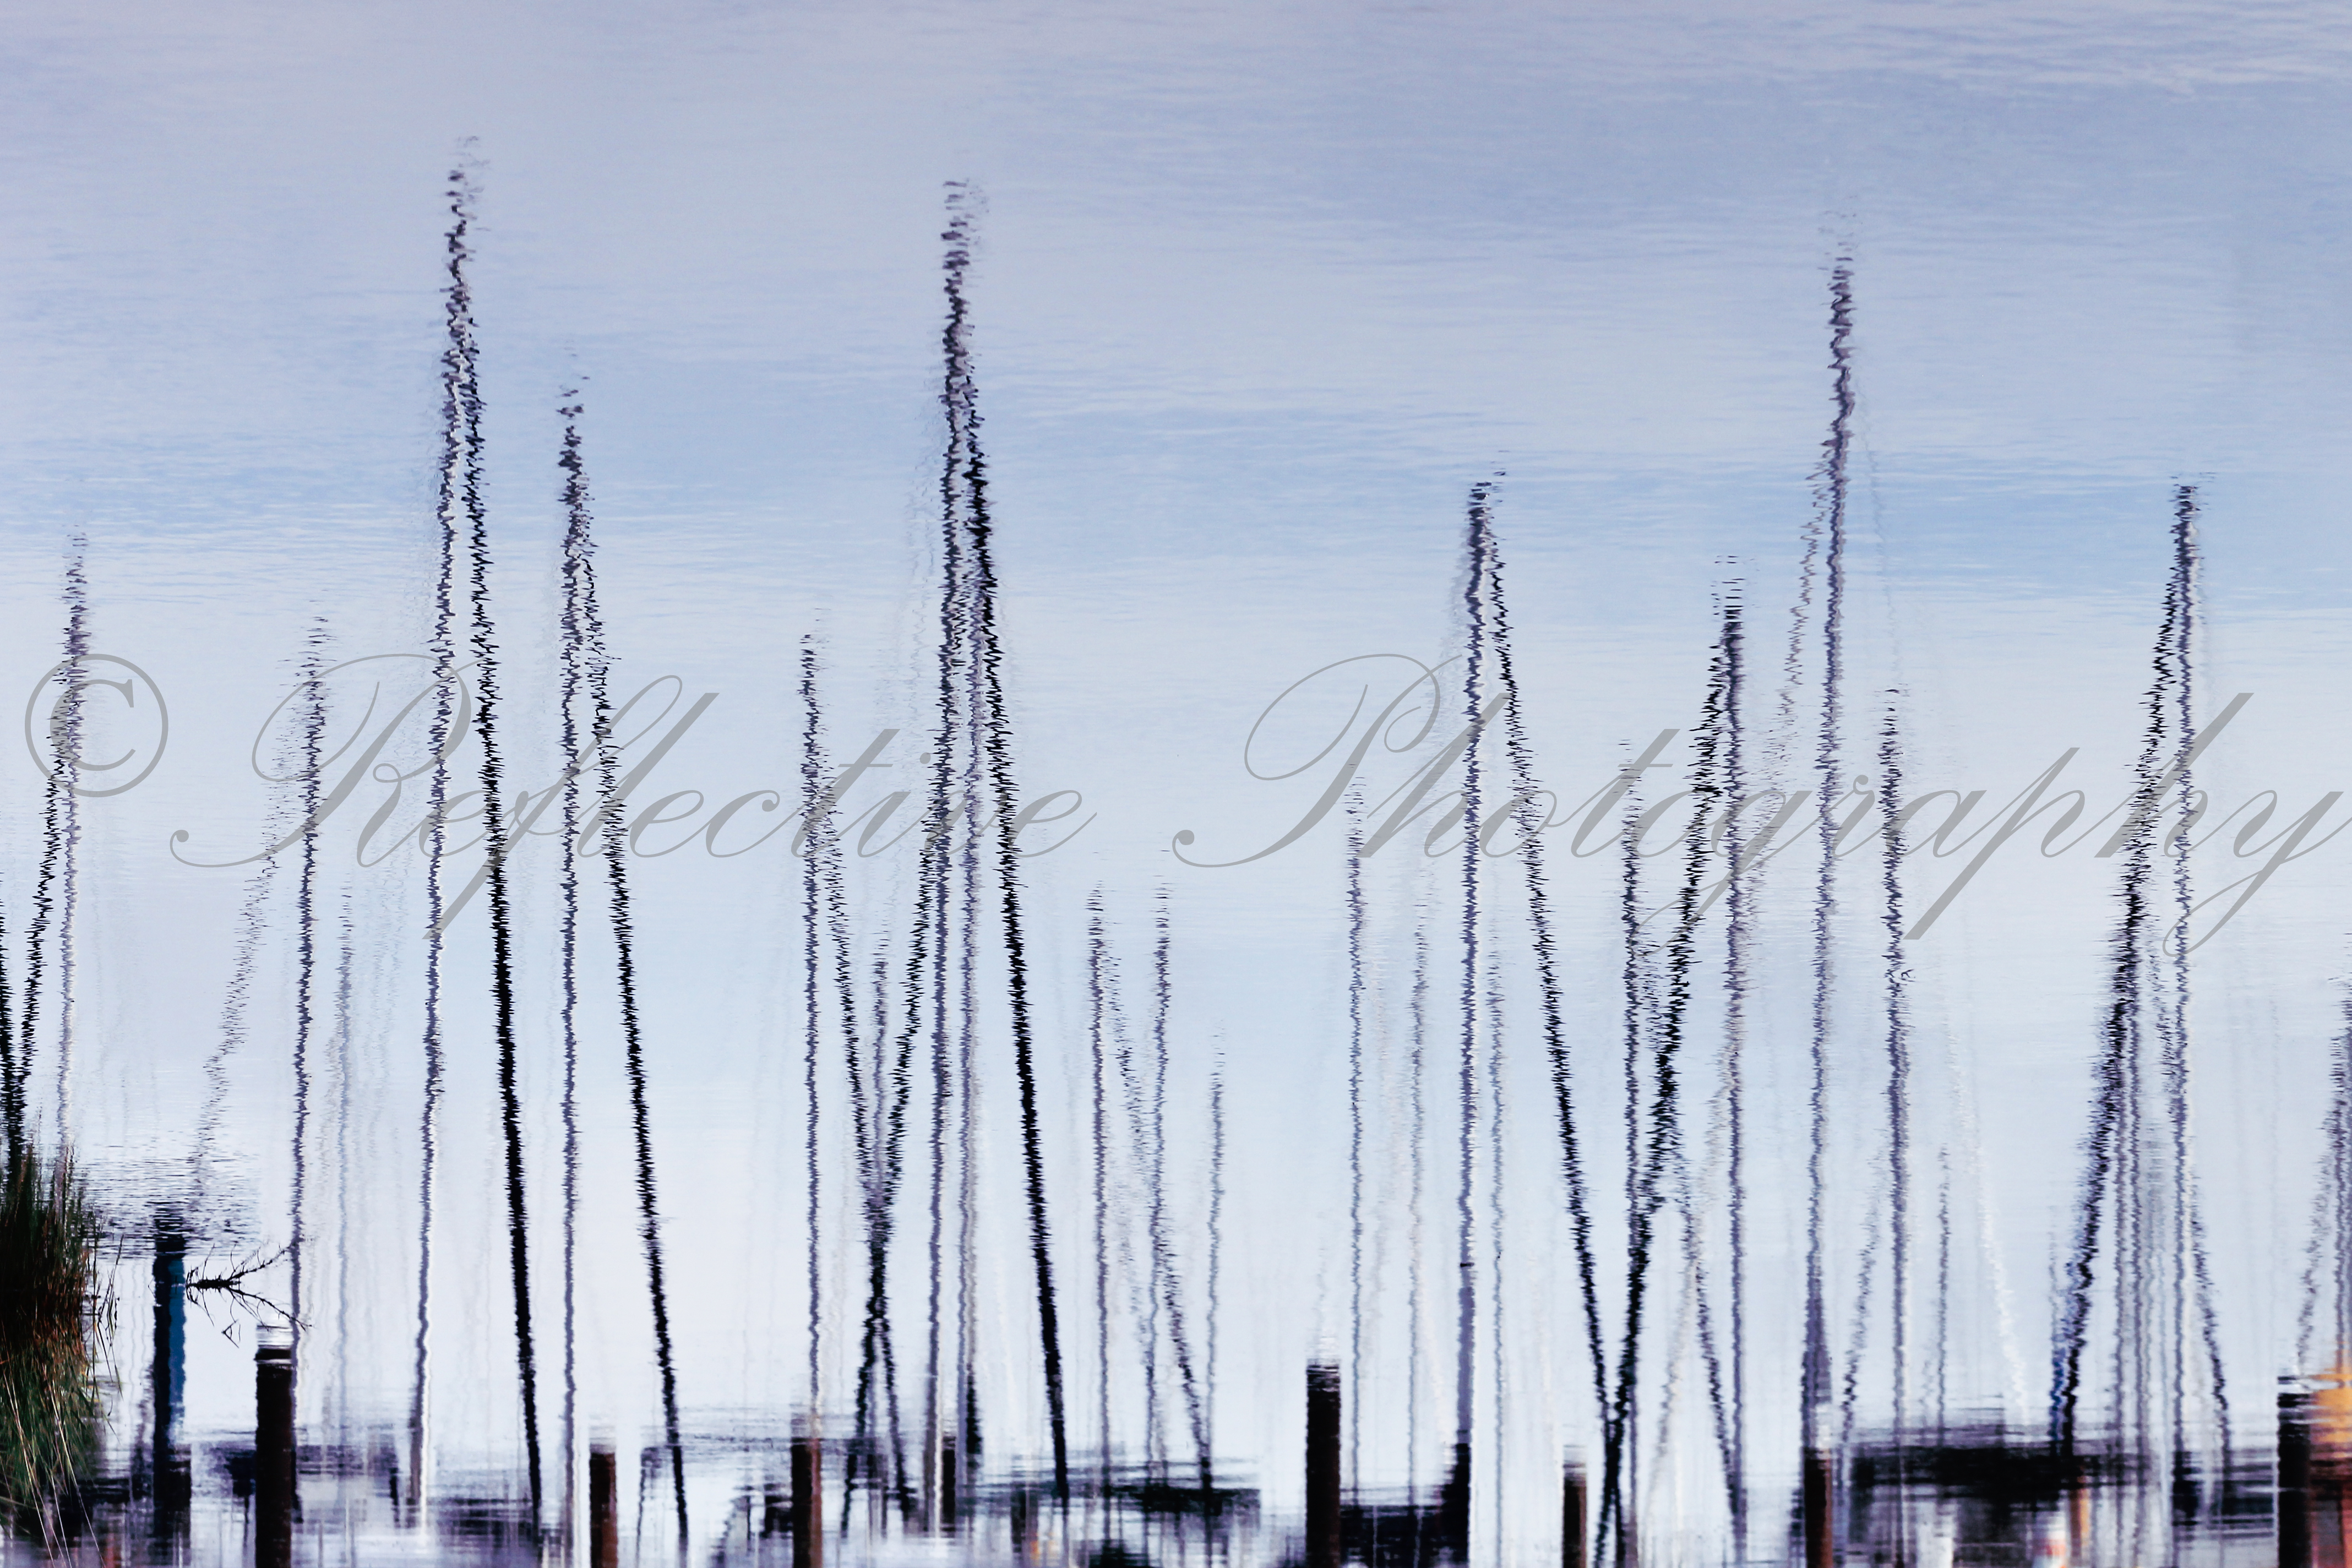 Photograph of boat masts reflected in water